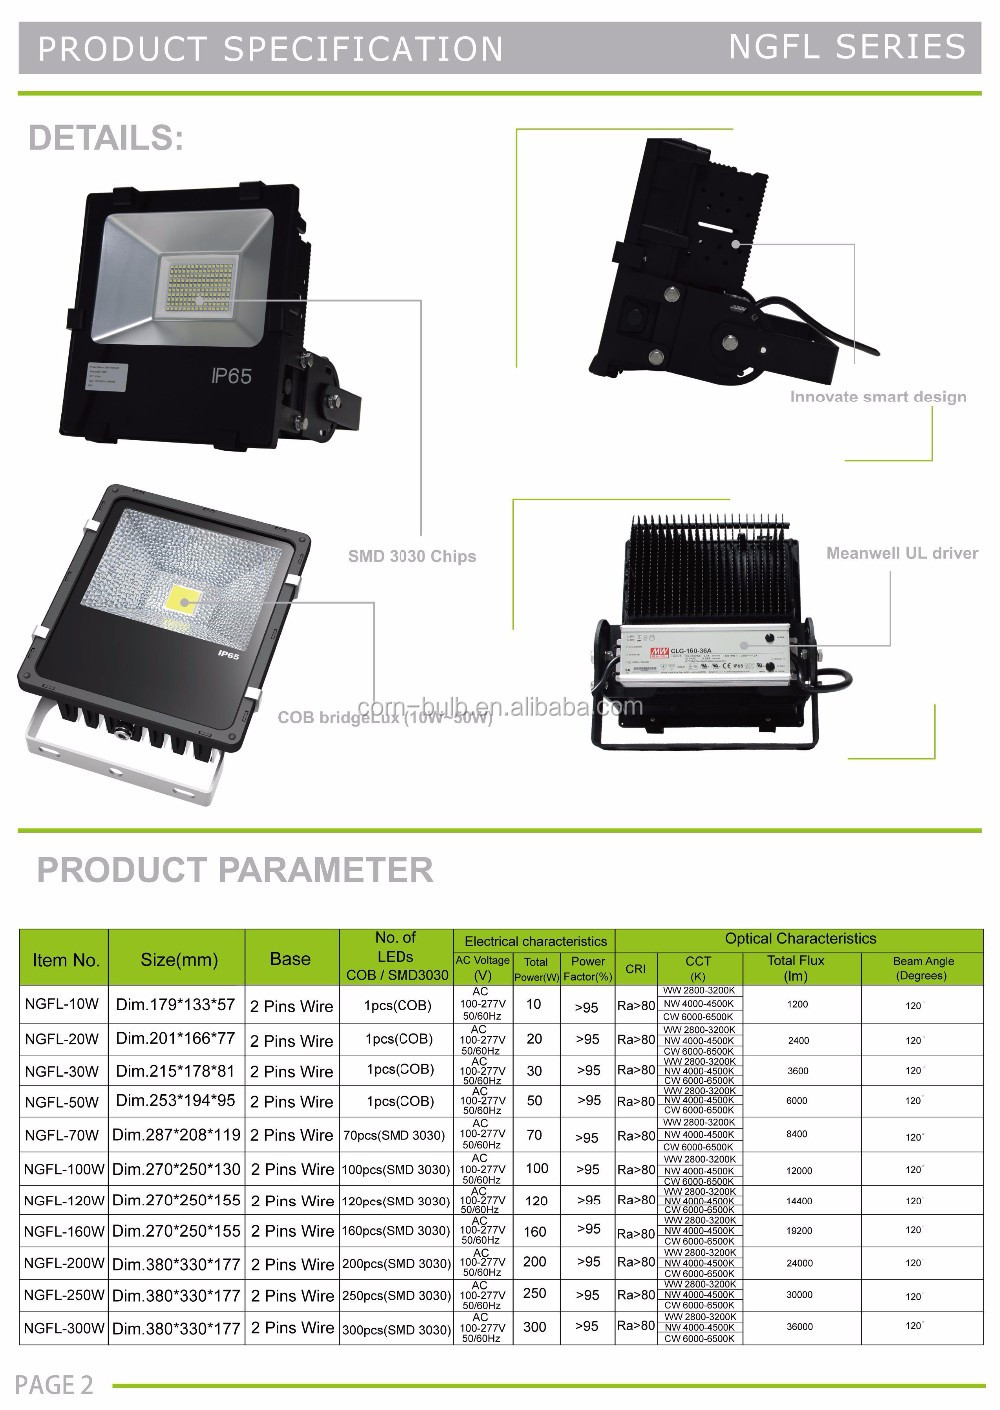 Replace 1000Watt HID Metal Halide High Pole Lights 240W LED Floodlight Outdoor Security Lights,Daylight White 5700K